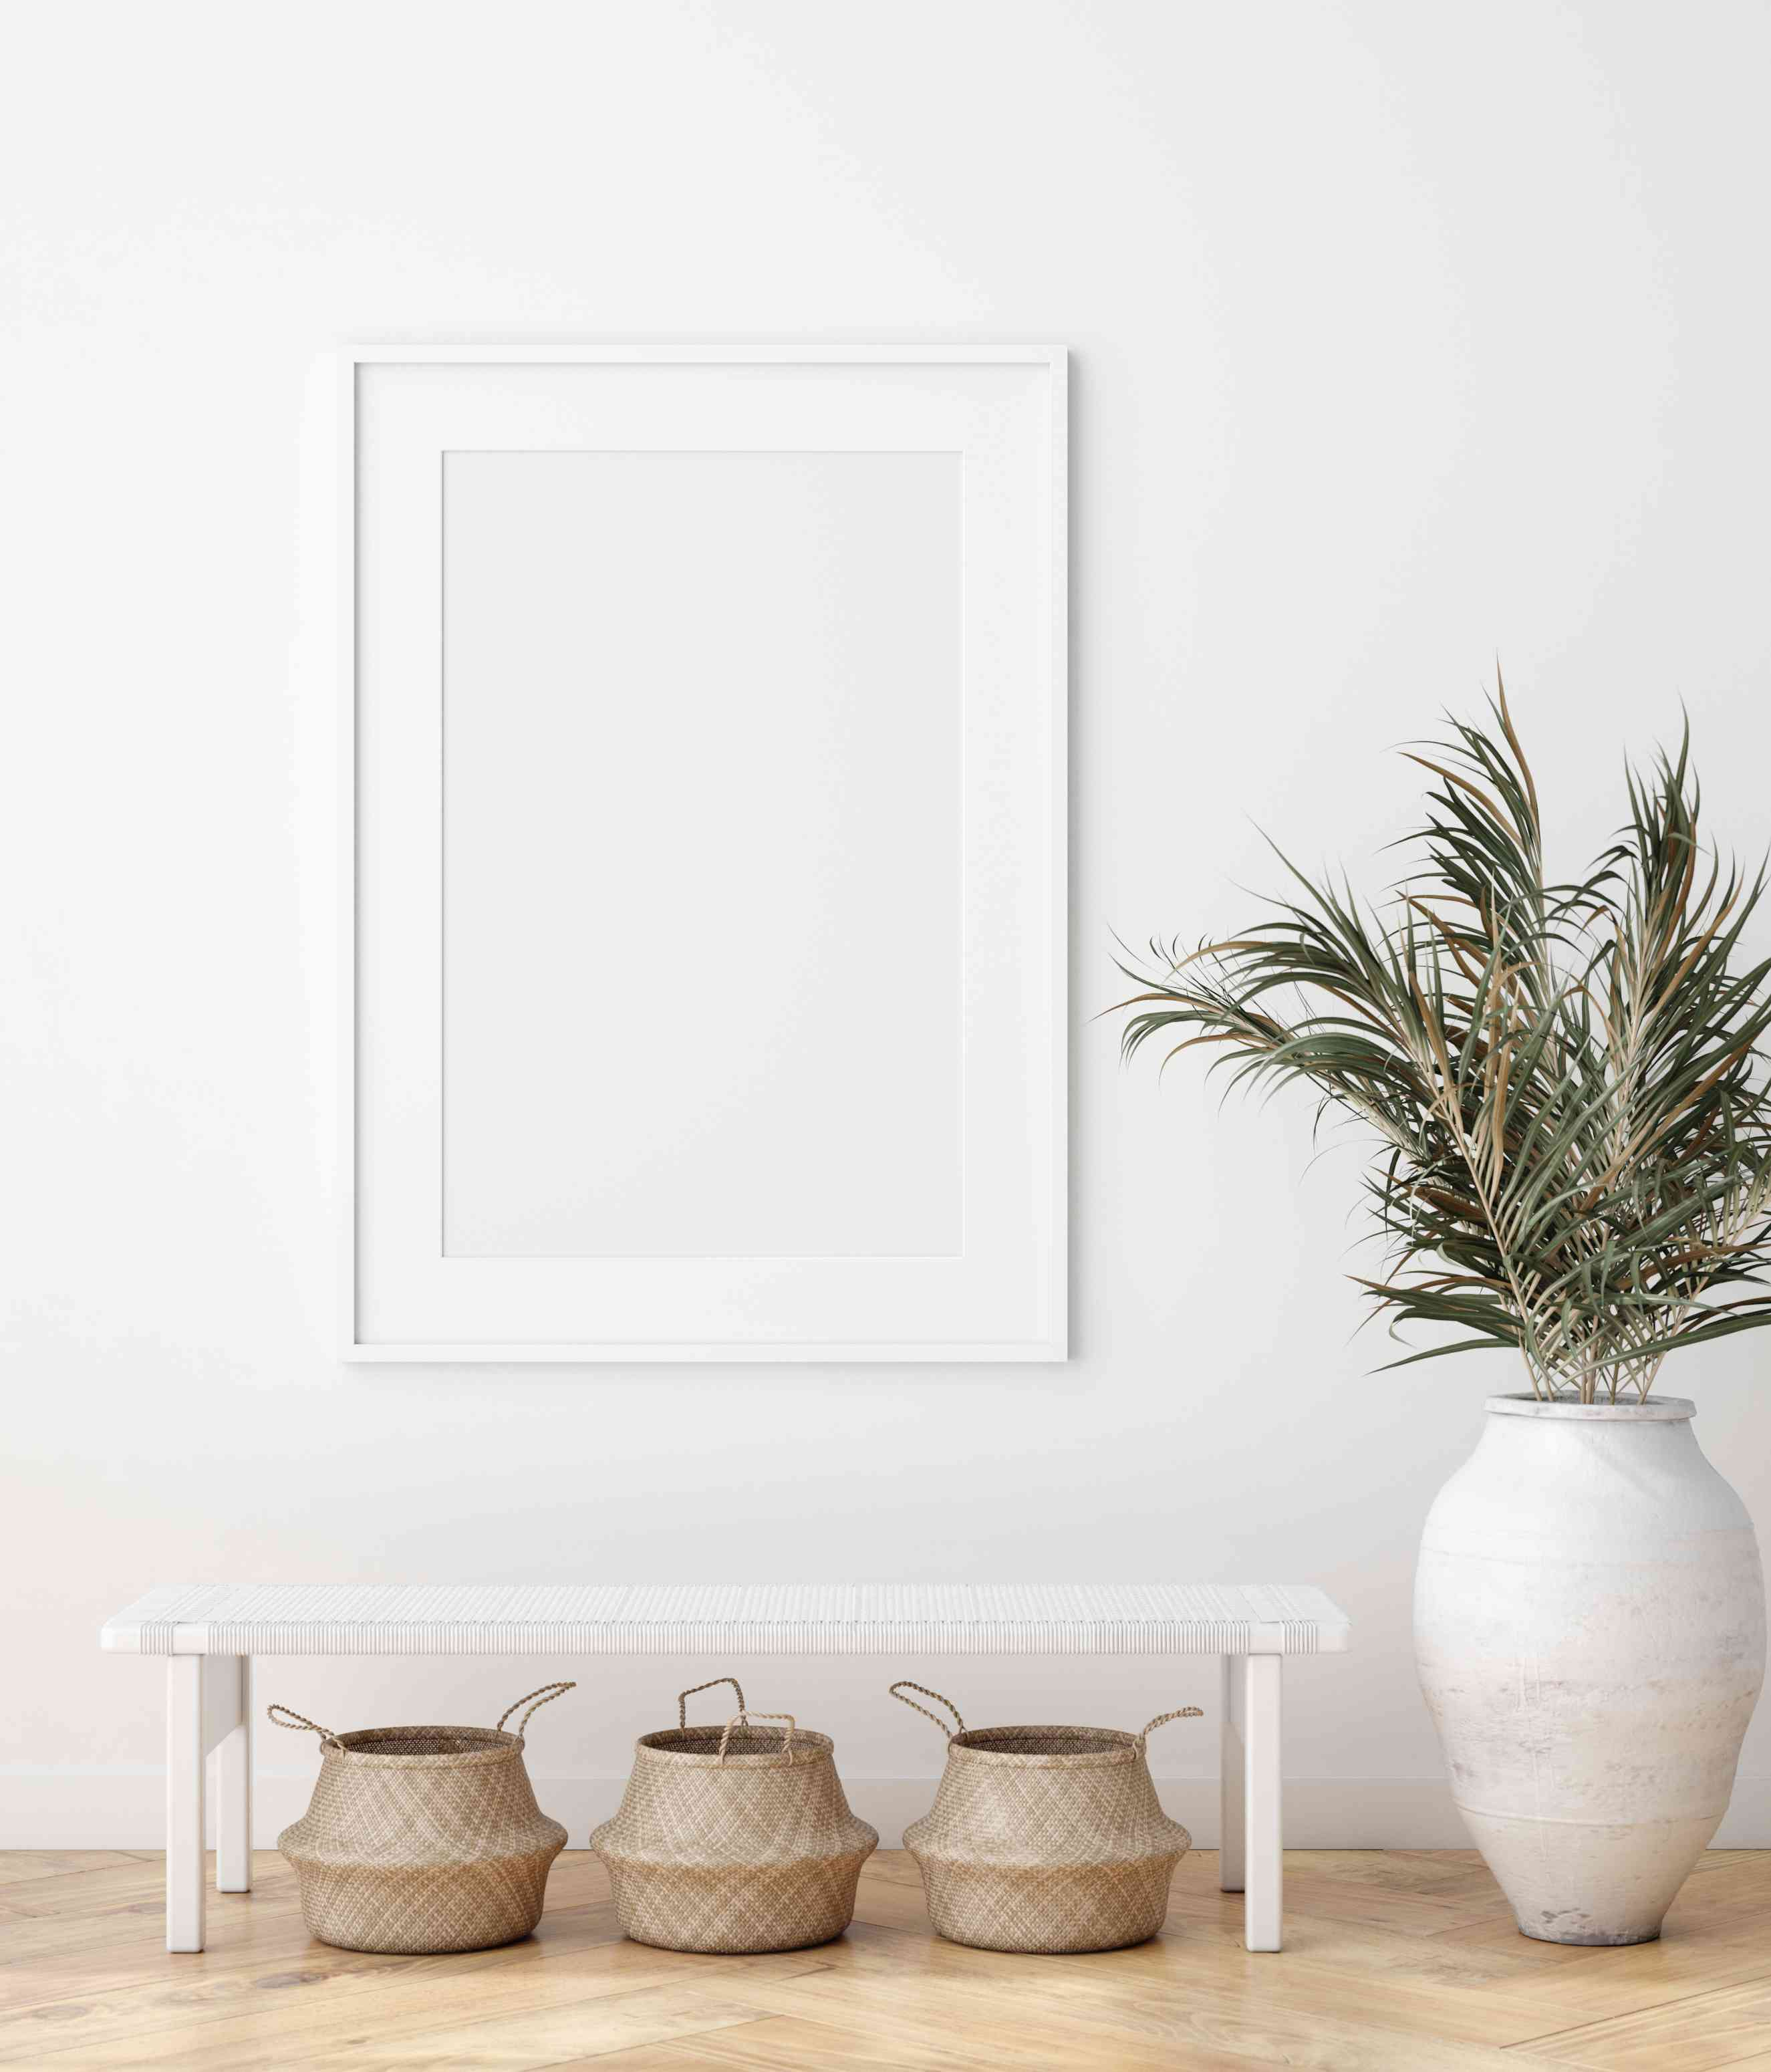 Minimalist interior with woven baskets beneath a white bench